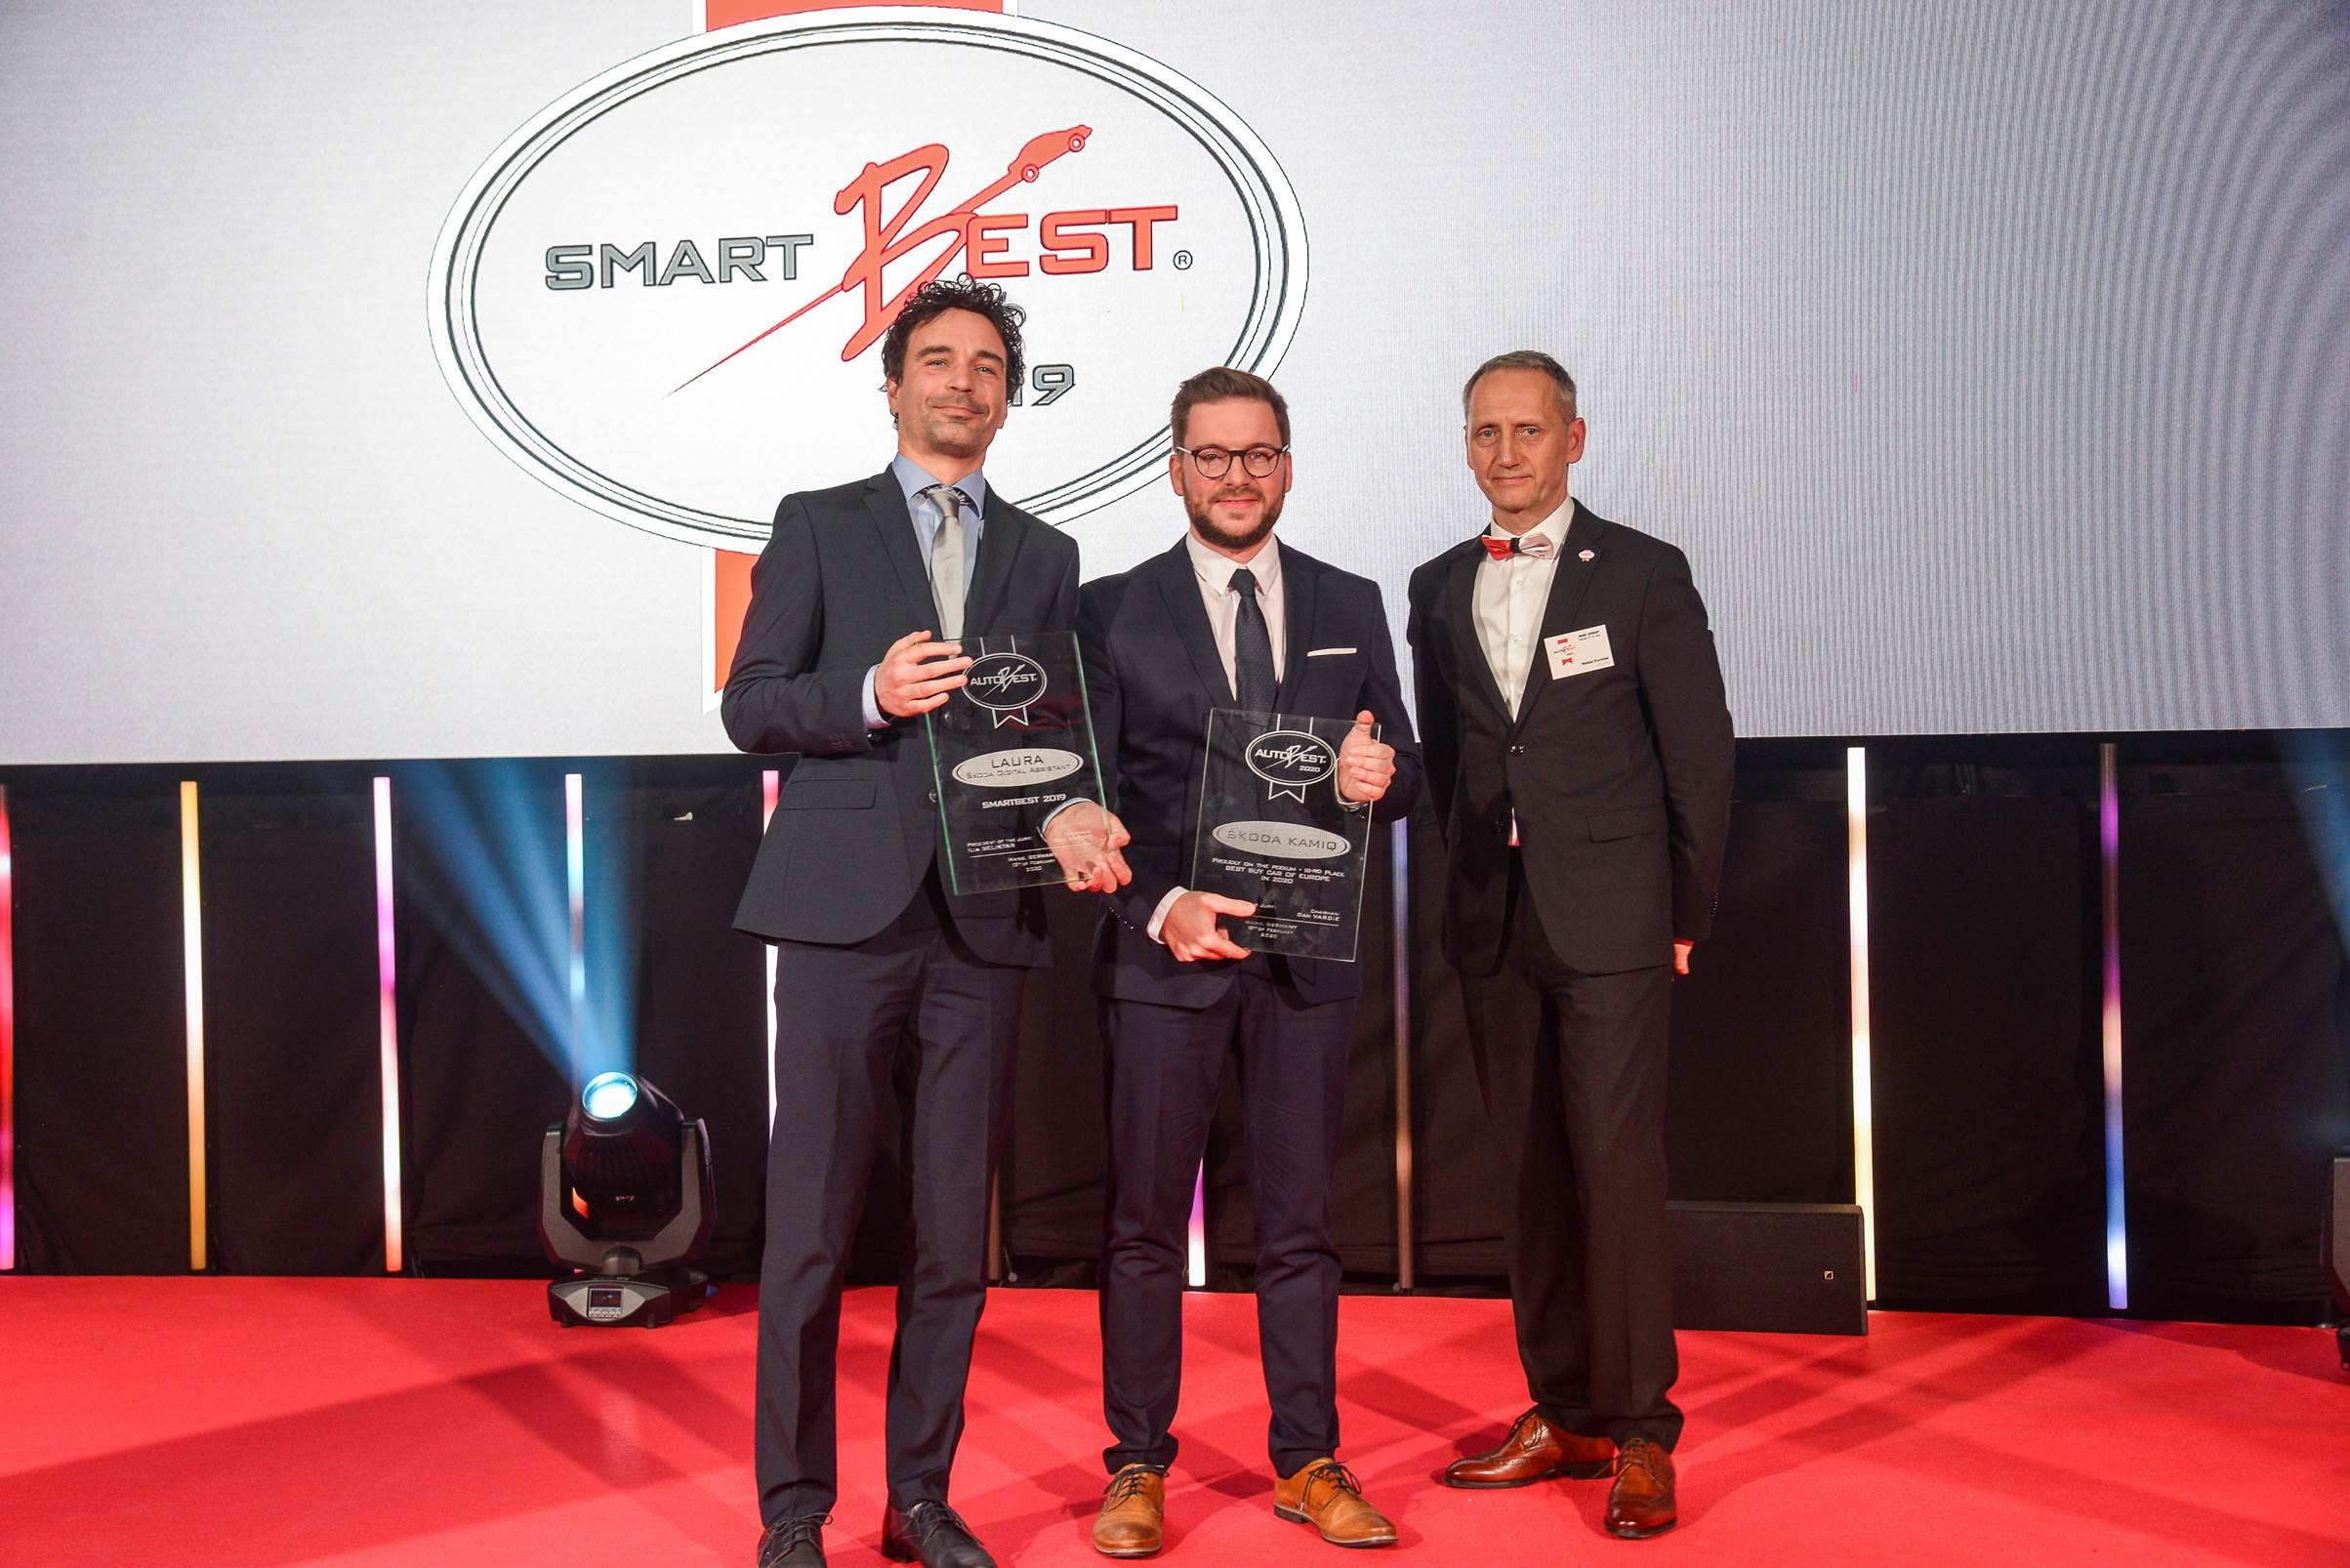 """SKODA wins """"SMARTBEST 2019"""" award for its new Digital Assistant Laura - Image 1"""